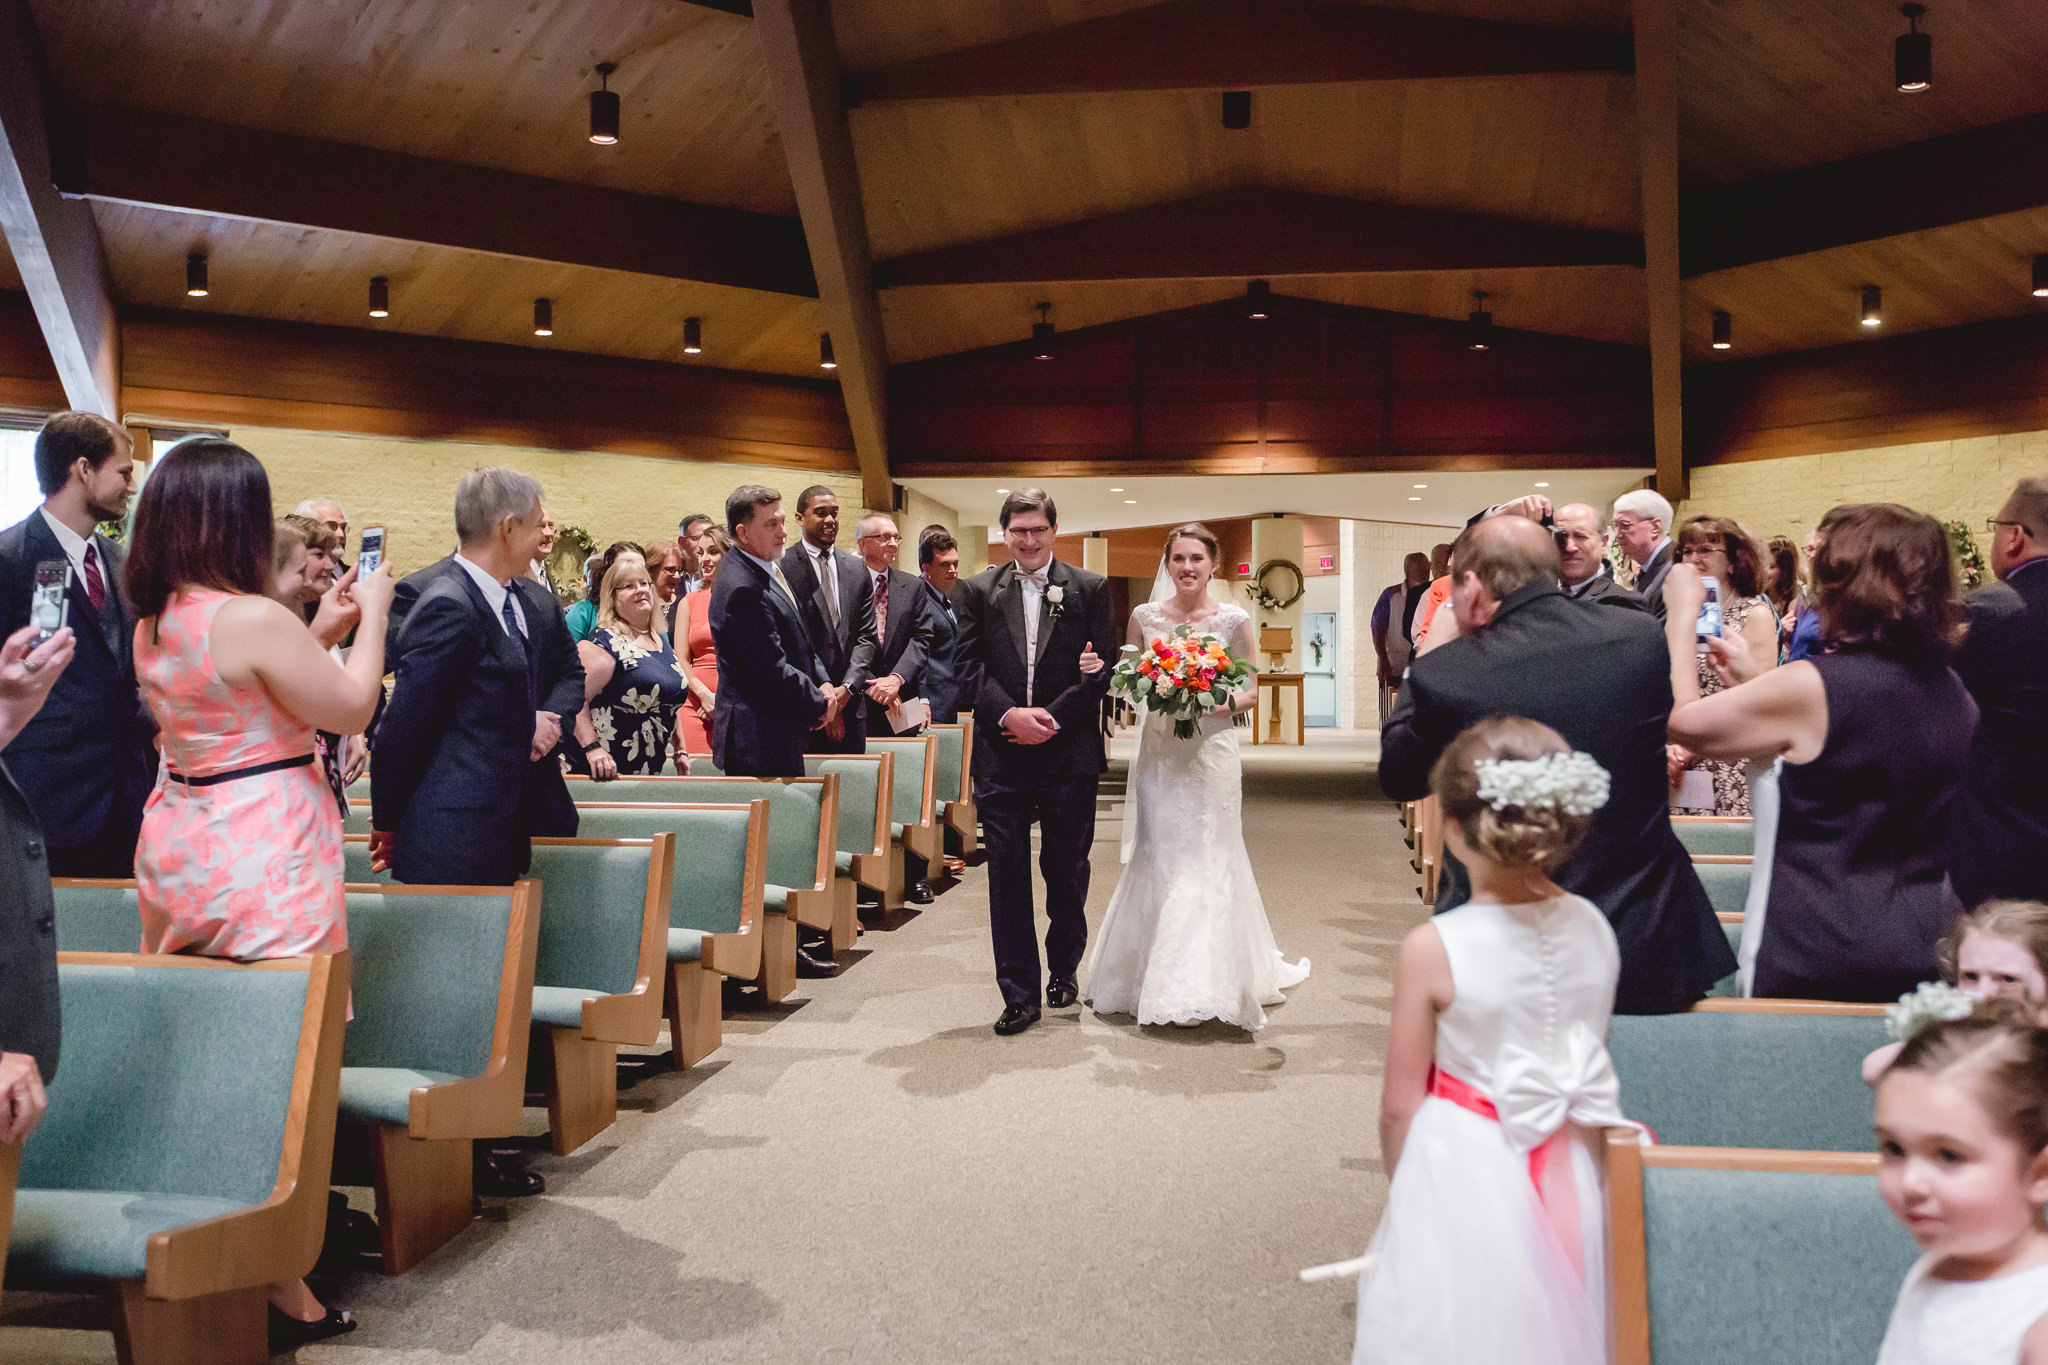 Father of the bride walks bride down the aisle at St. John Neumann Church in Pittsburgh PA